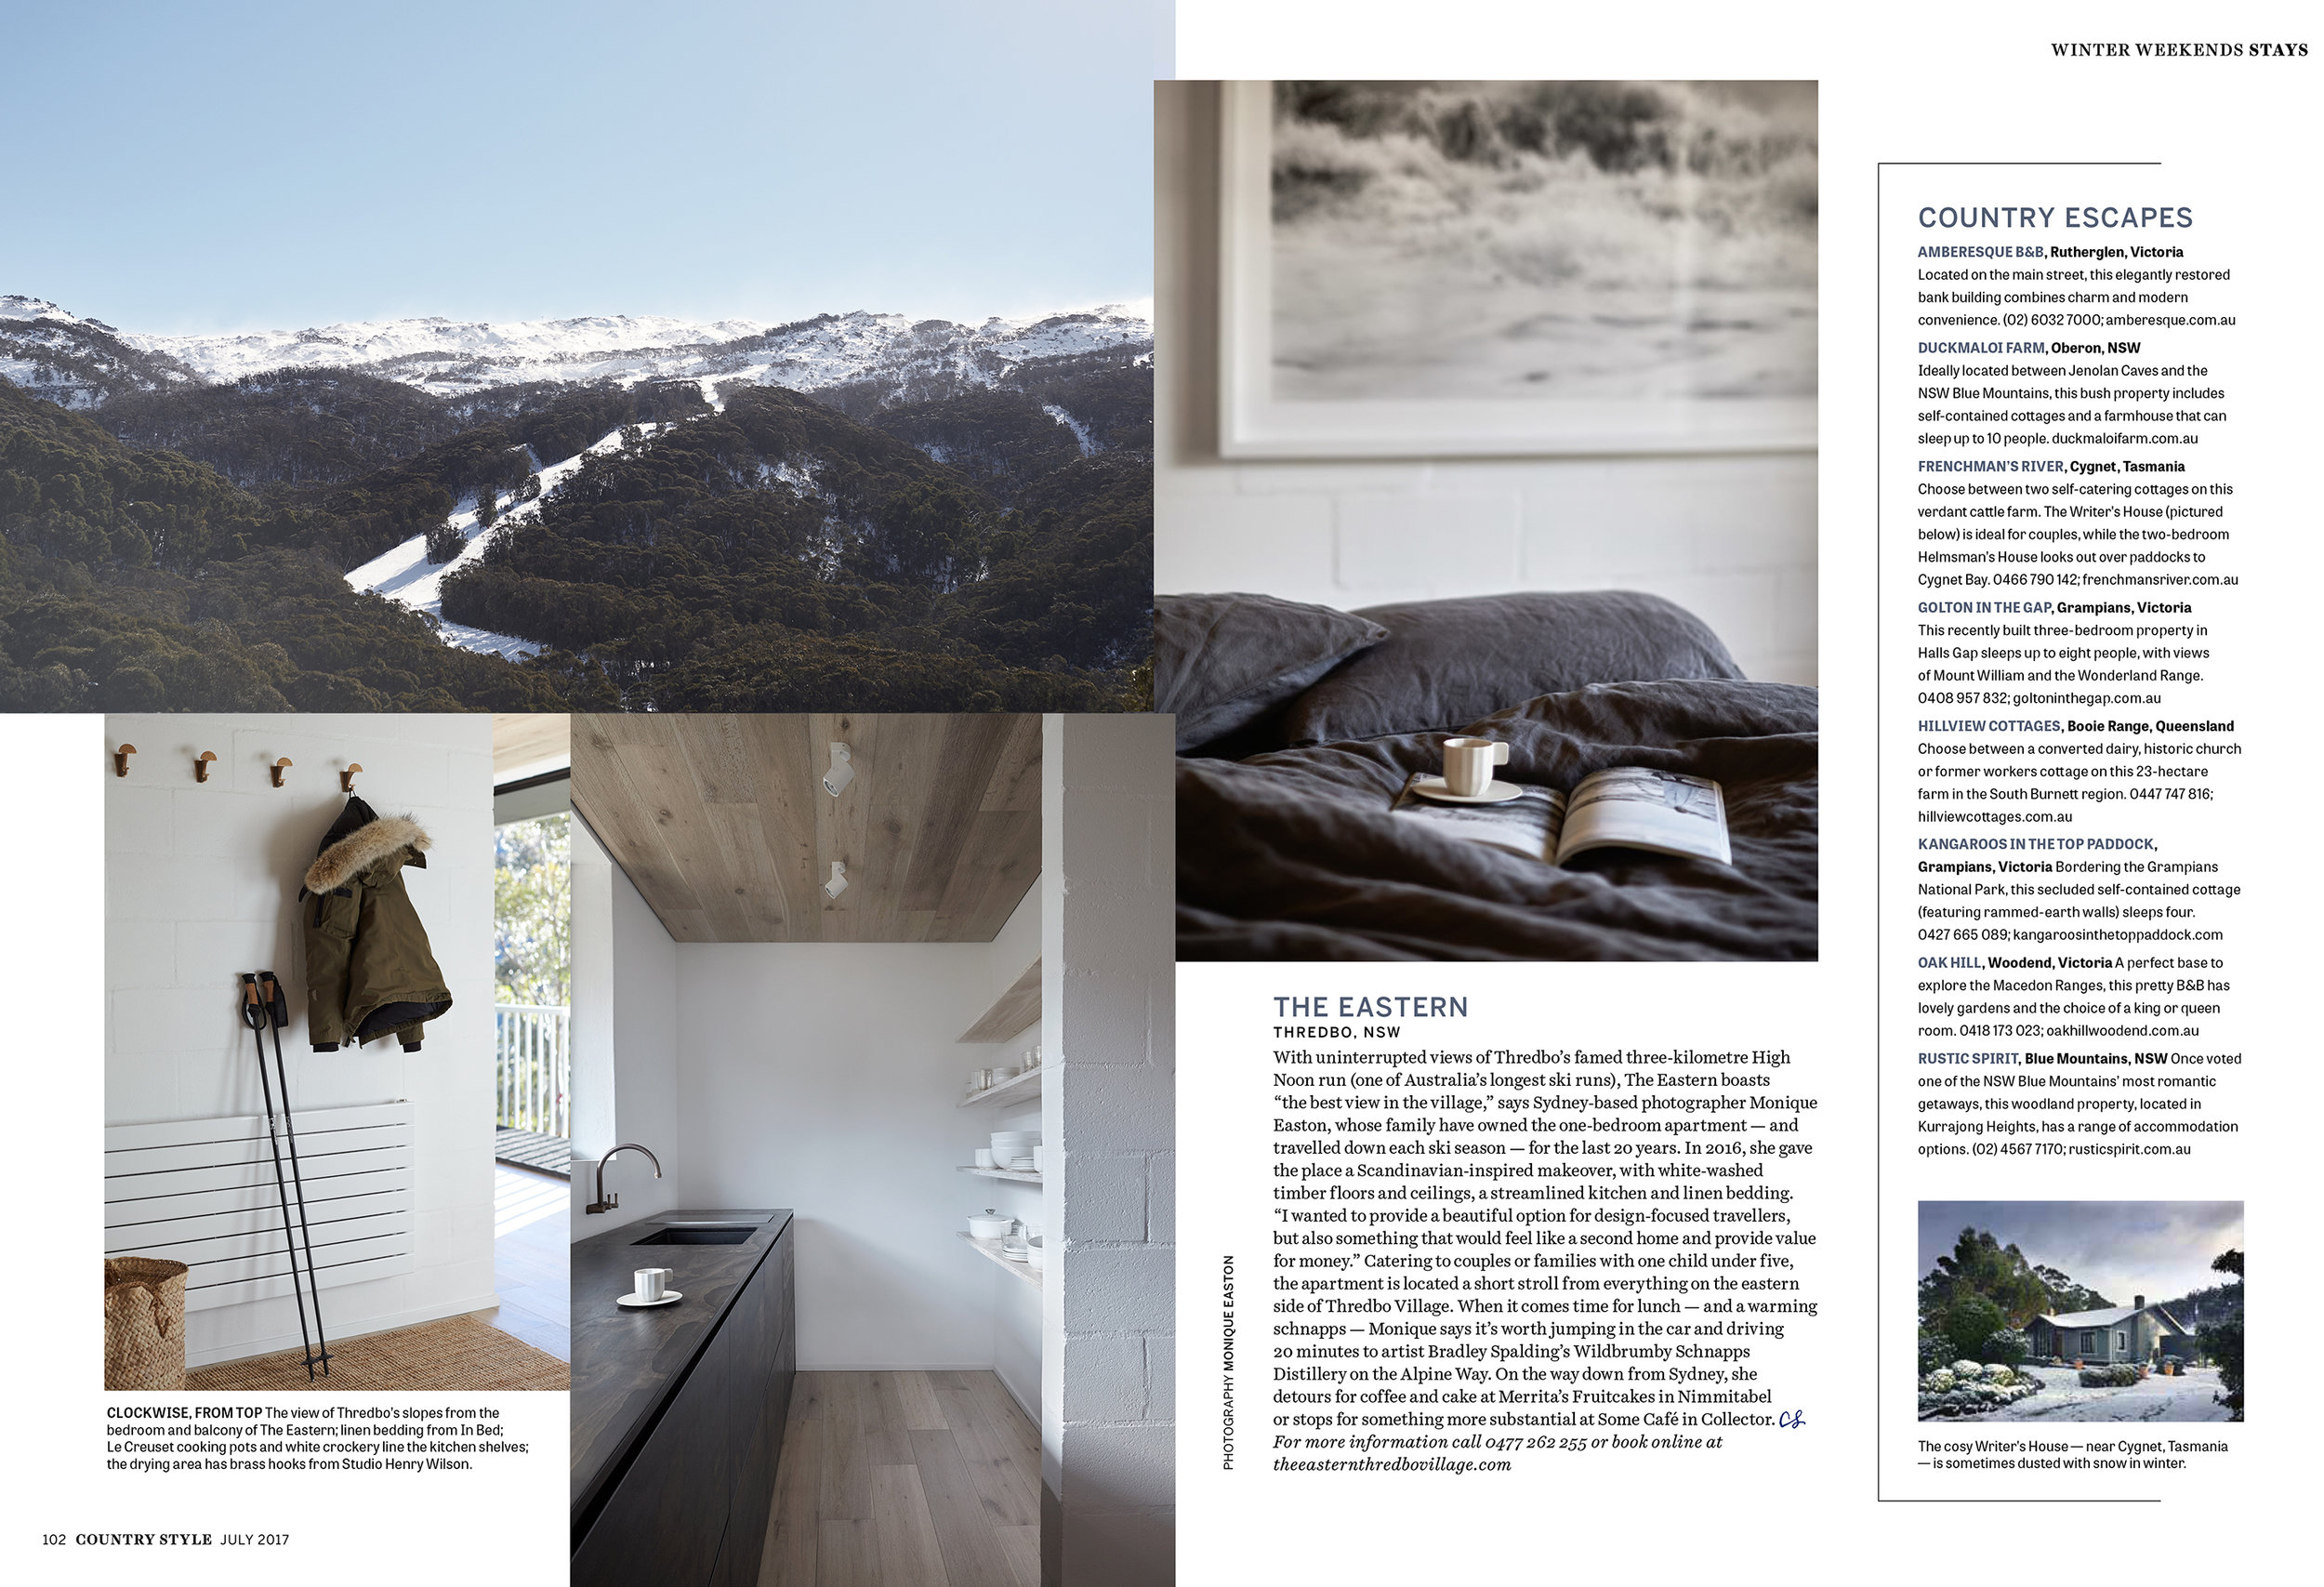 Accommodation_The_Eastern_Thredbo_Village_Country_Style_Magazine_2